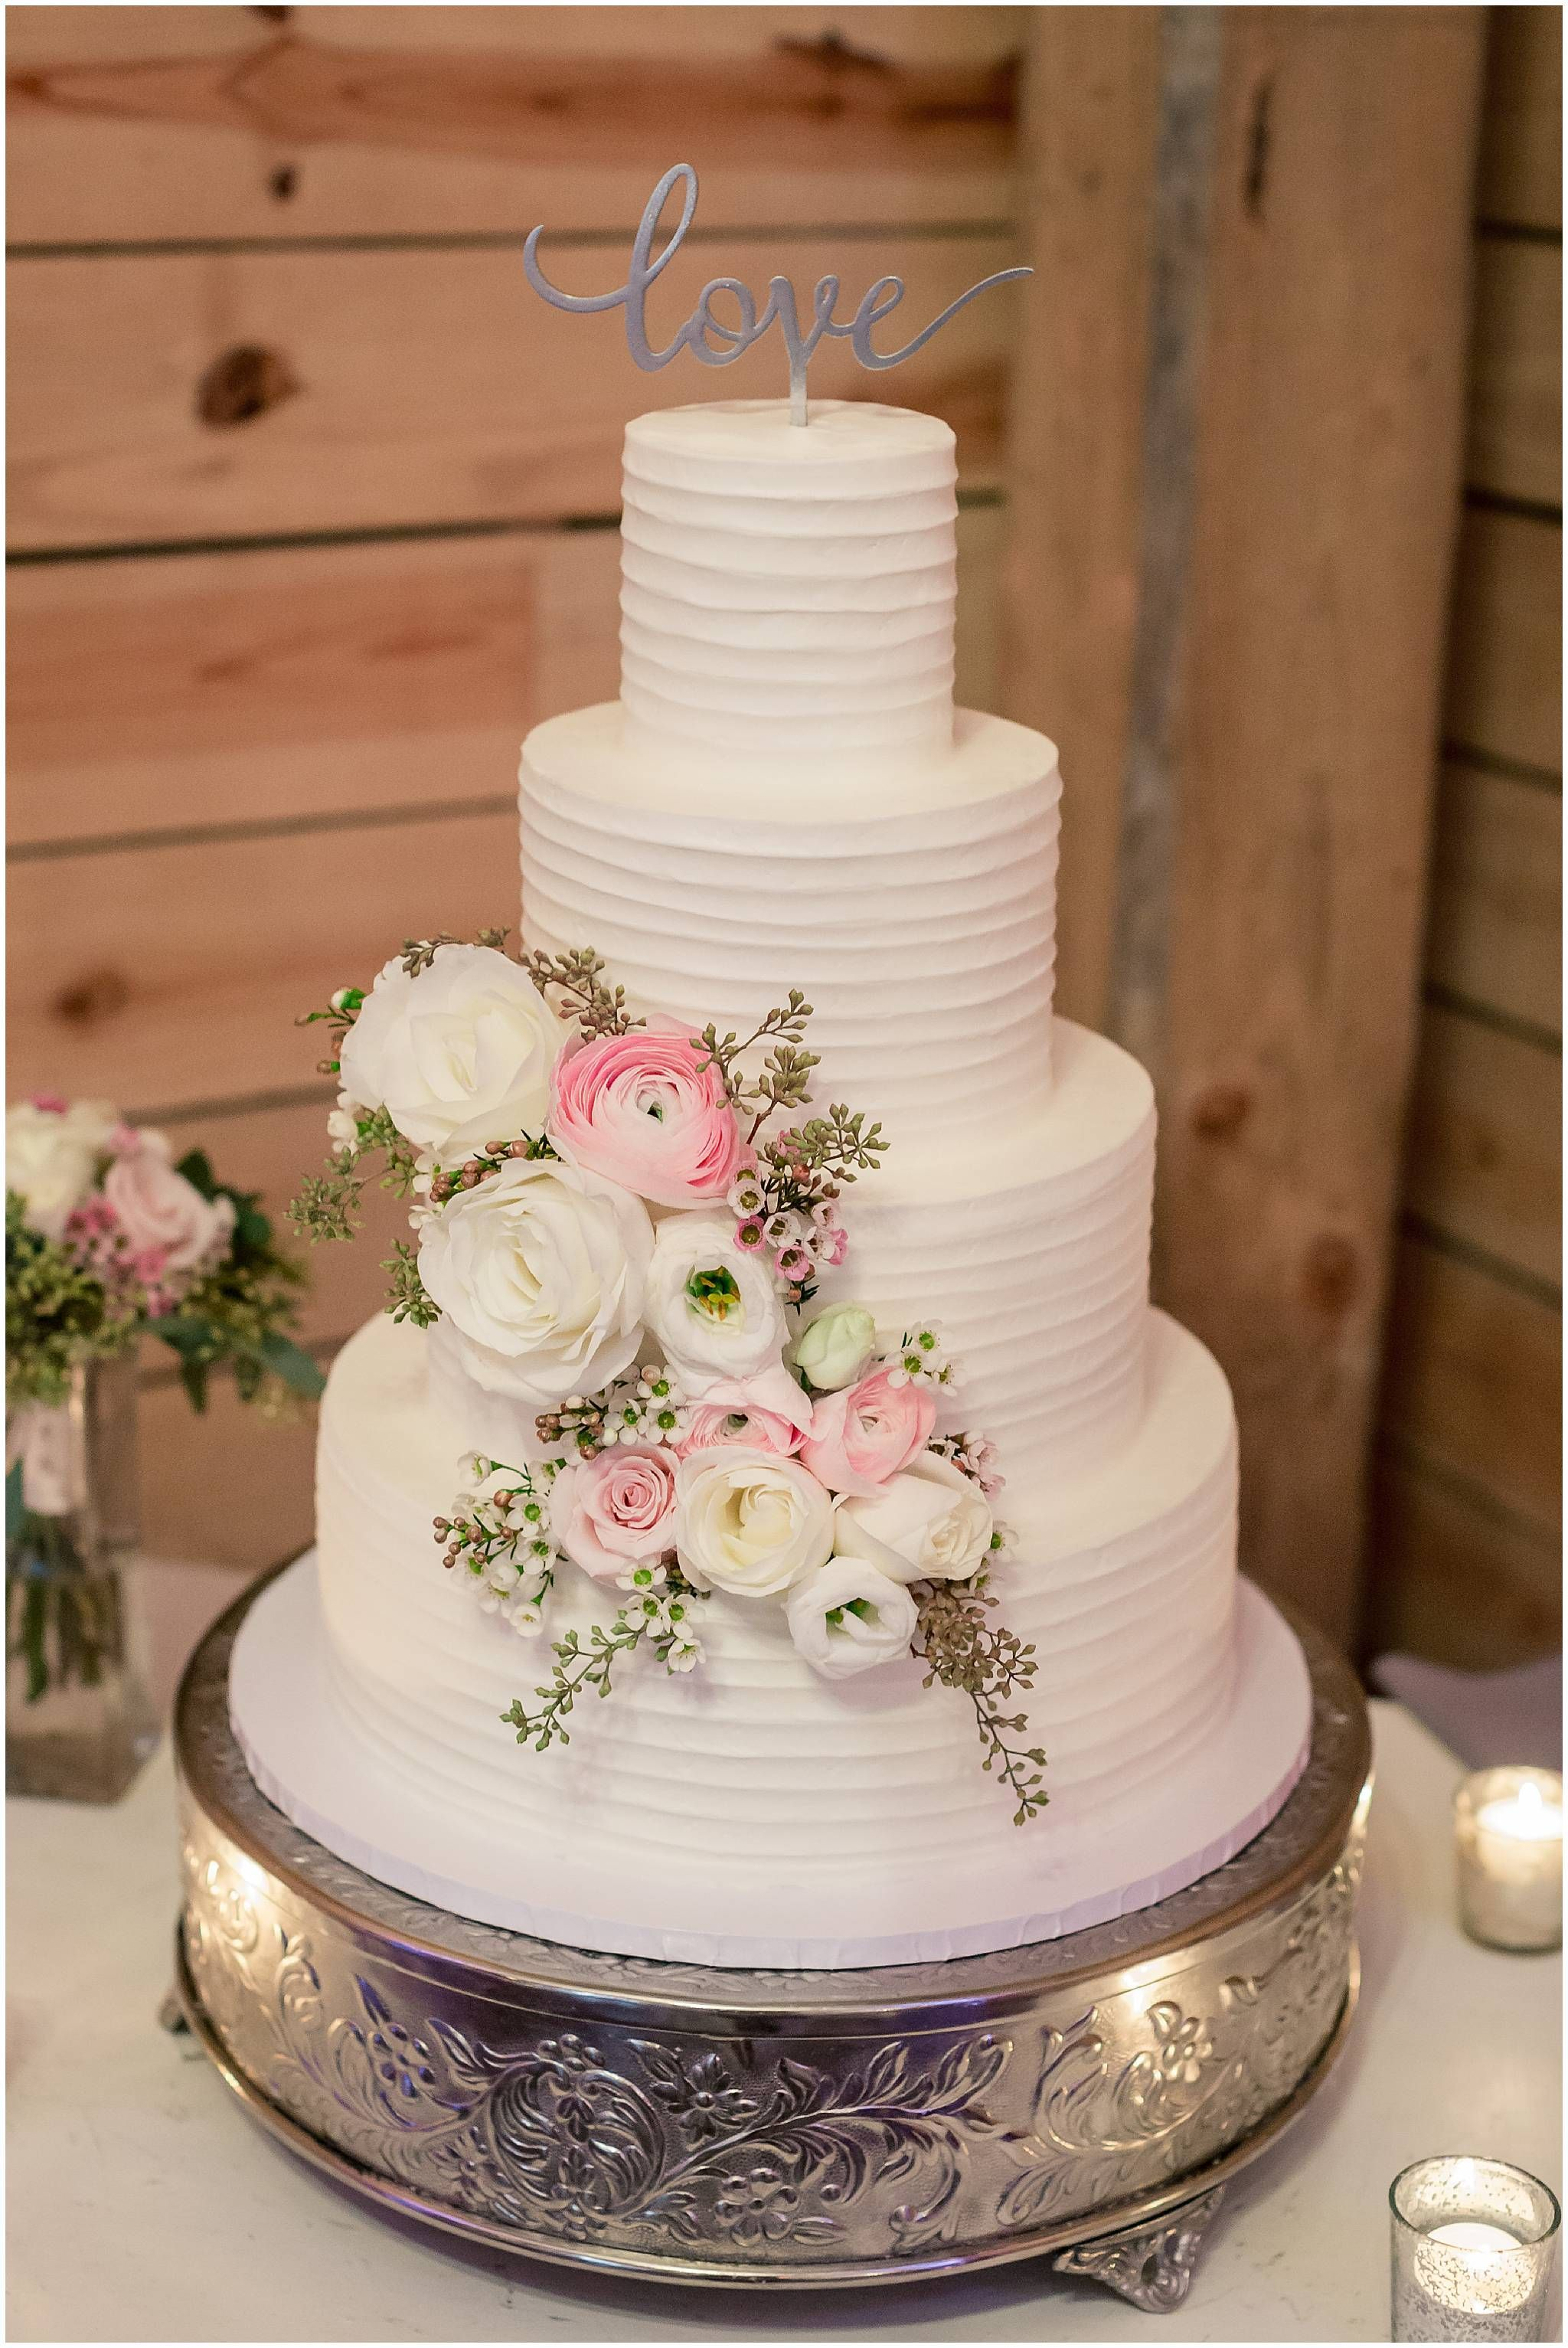 Wheeler House Wedding Pictures Simple Affordable Wedding Cake 4 Tier Wedding Cake With Flowers Big Wedding Cakes Wedding Cakes With Flowers Pink Wedding Cake